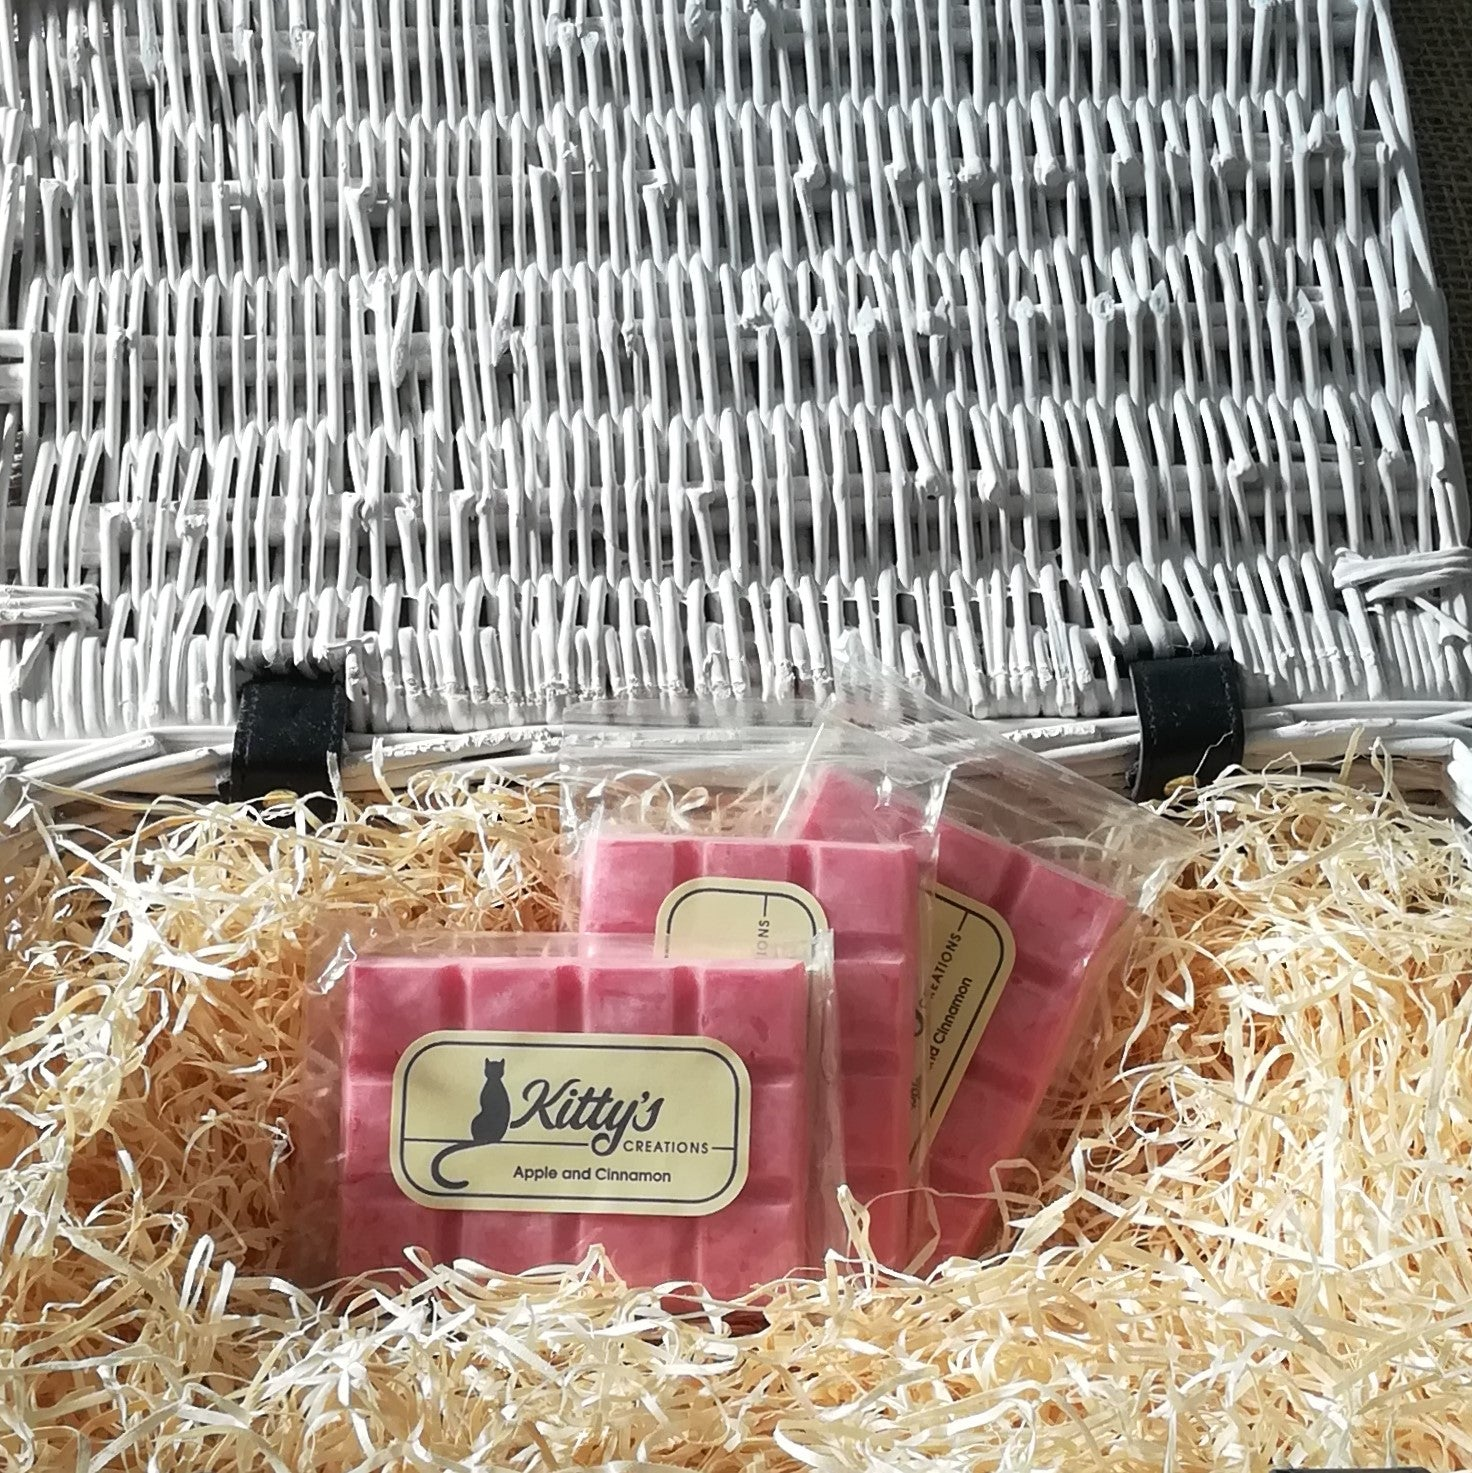 Three hand-made, vegan friendly, paraffin free Wax Melts, coloured a soft, blushing pink sitting in a basket of straw. Each with a spicy fragrance that transports you to rainy British summertime afternoons spent during the holidays as a warm apple crumble emerges from the oven. As autumn draws near and the leaves turn golden this melt is perfect for snuggling down as you read a book, watch a film, or stare for a glimpse of the mountains from a bothy window.